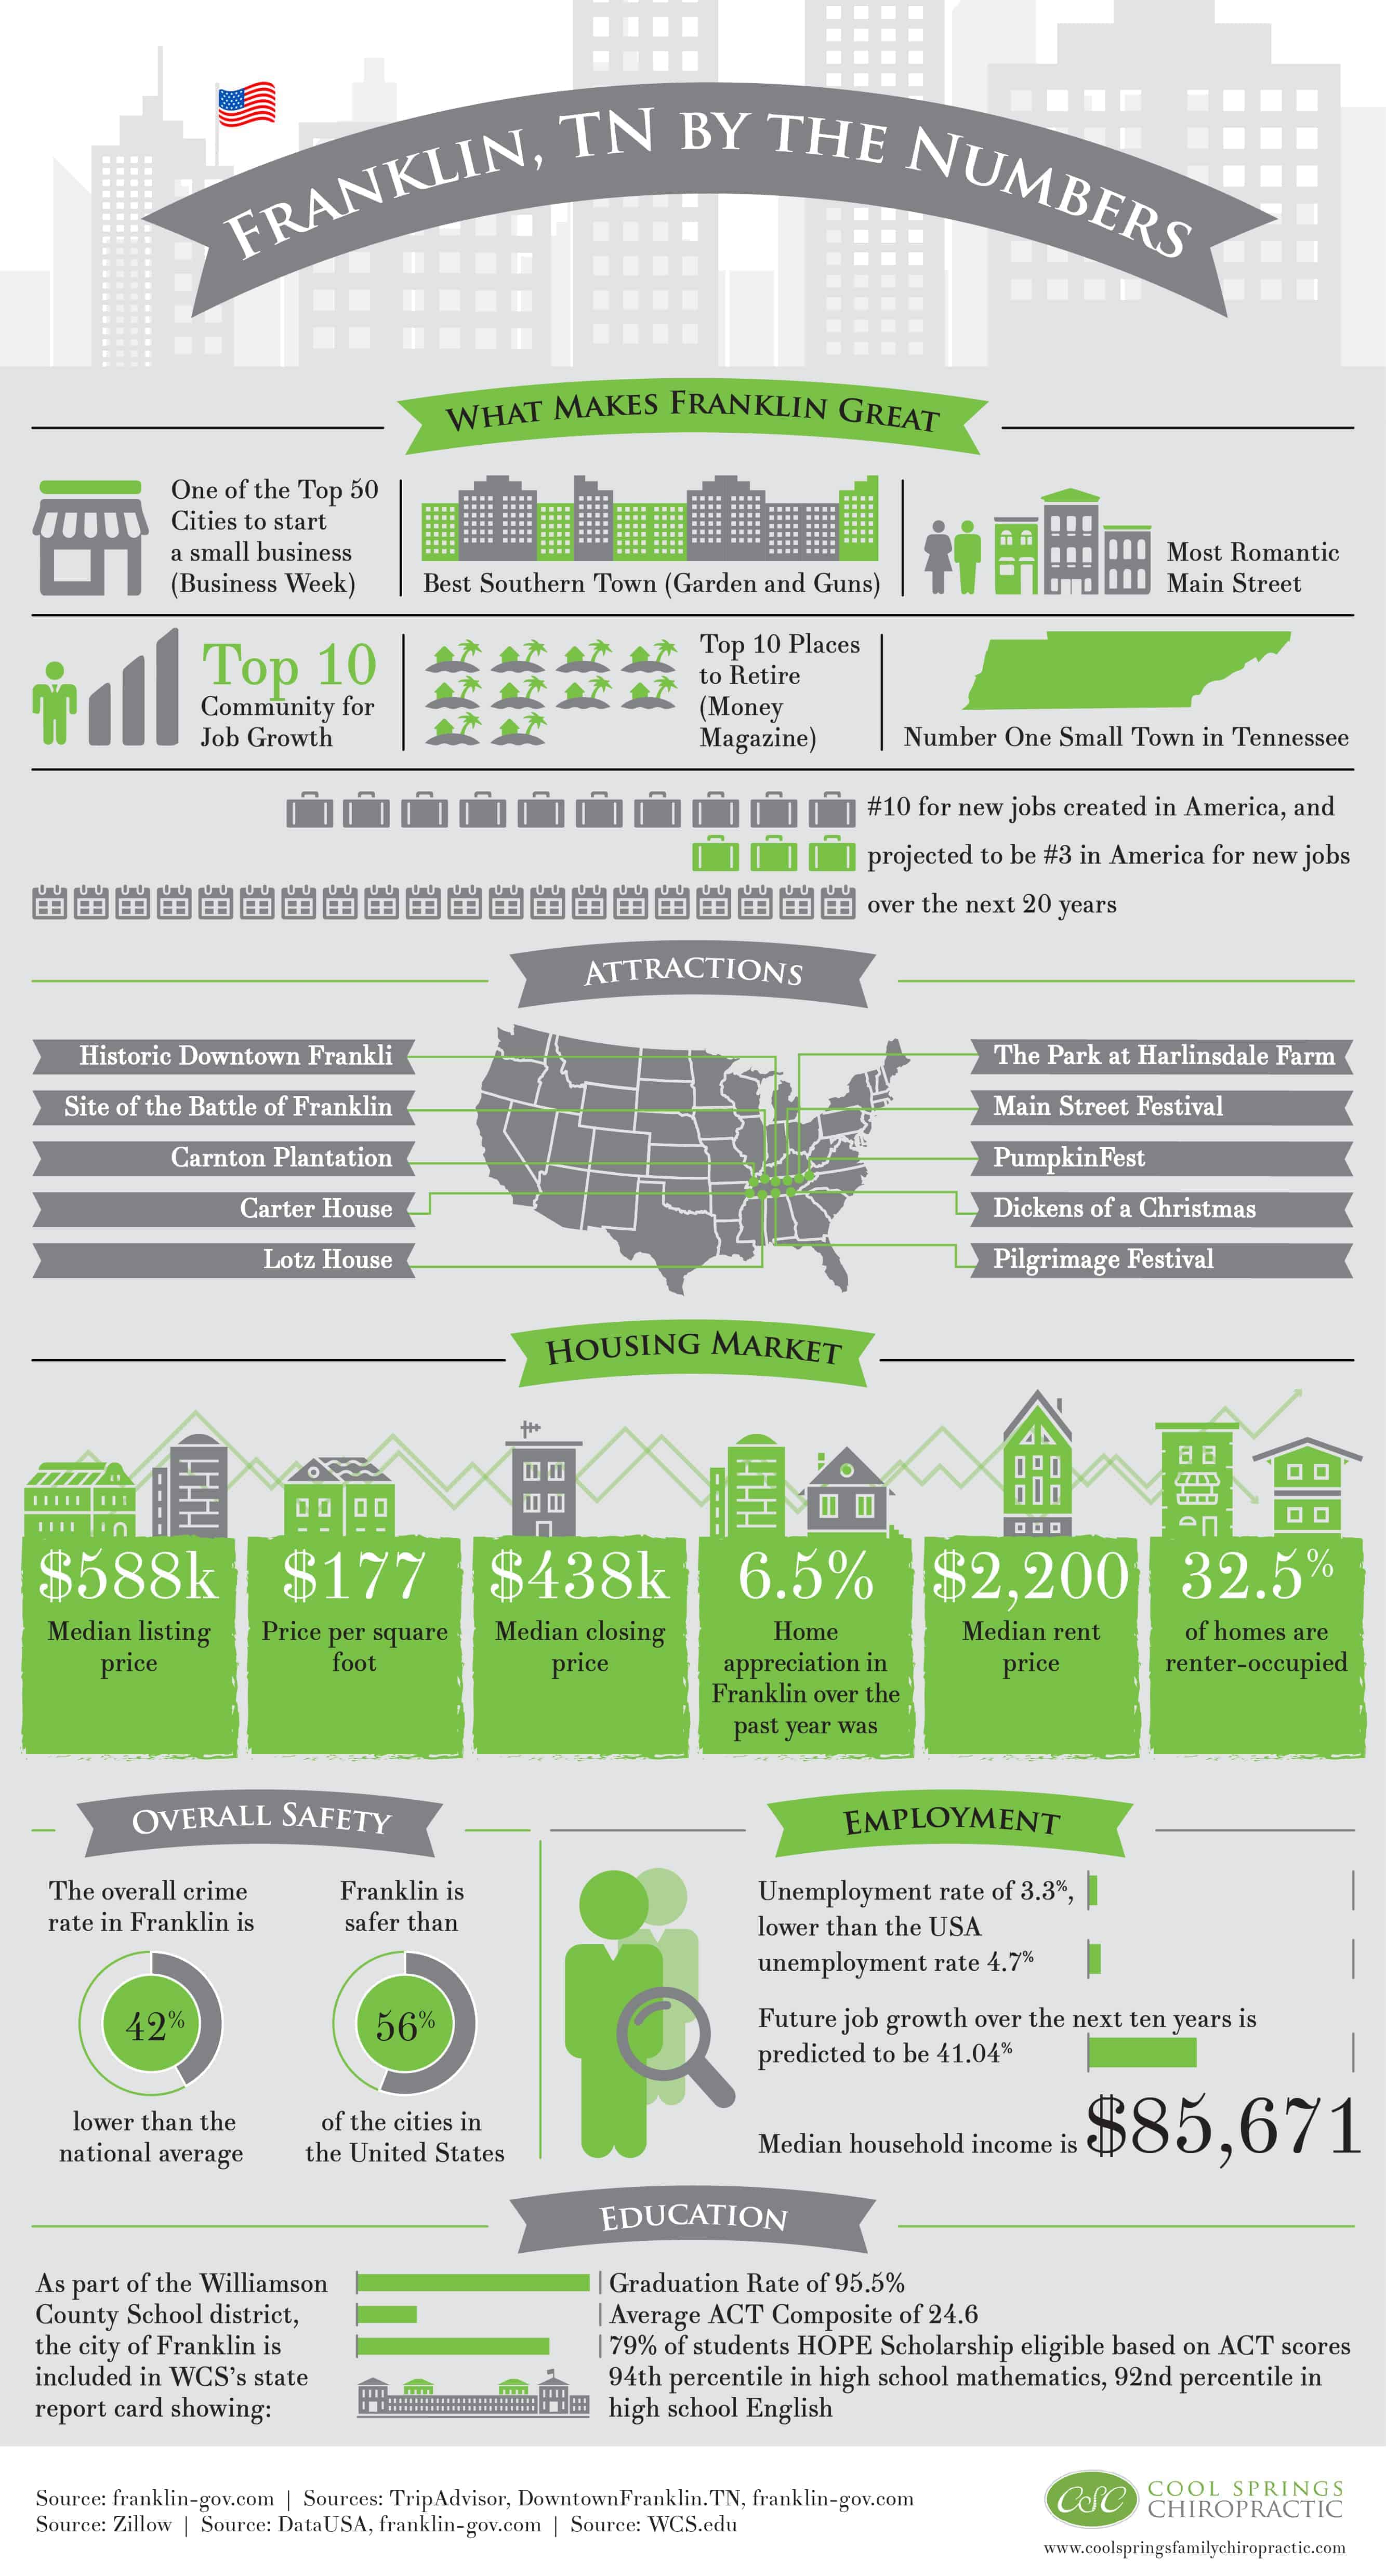 Franklin, TN by the Numbers